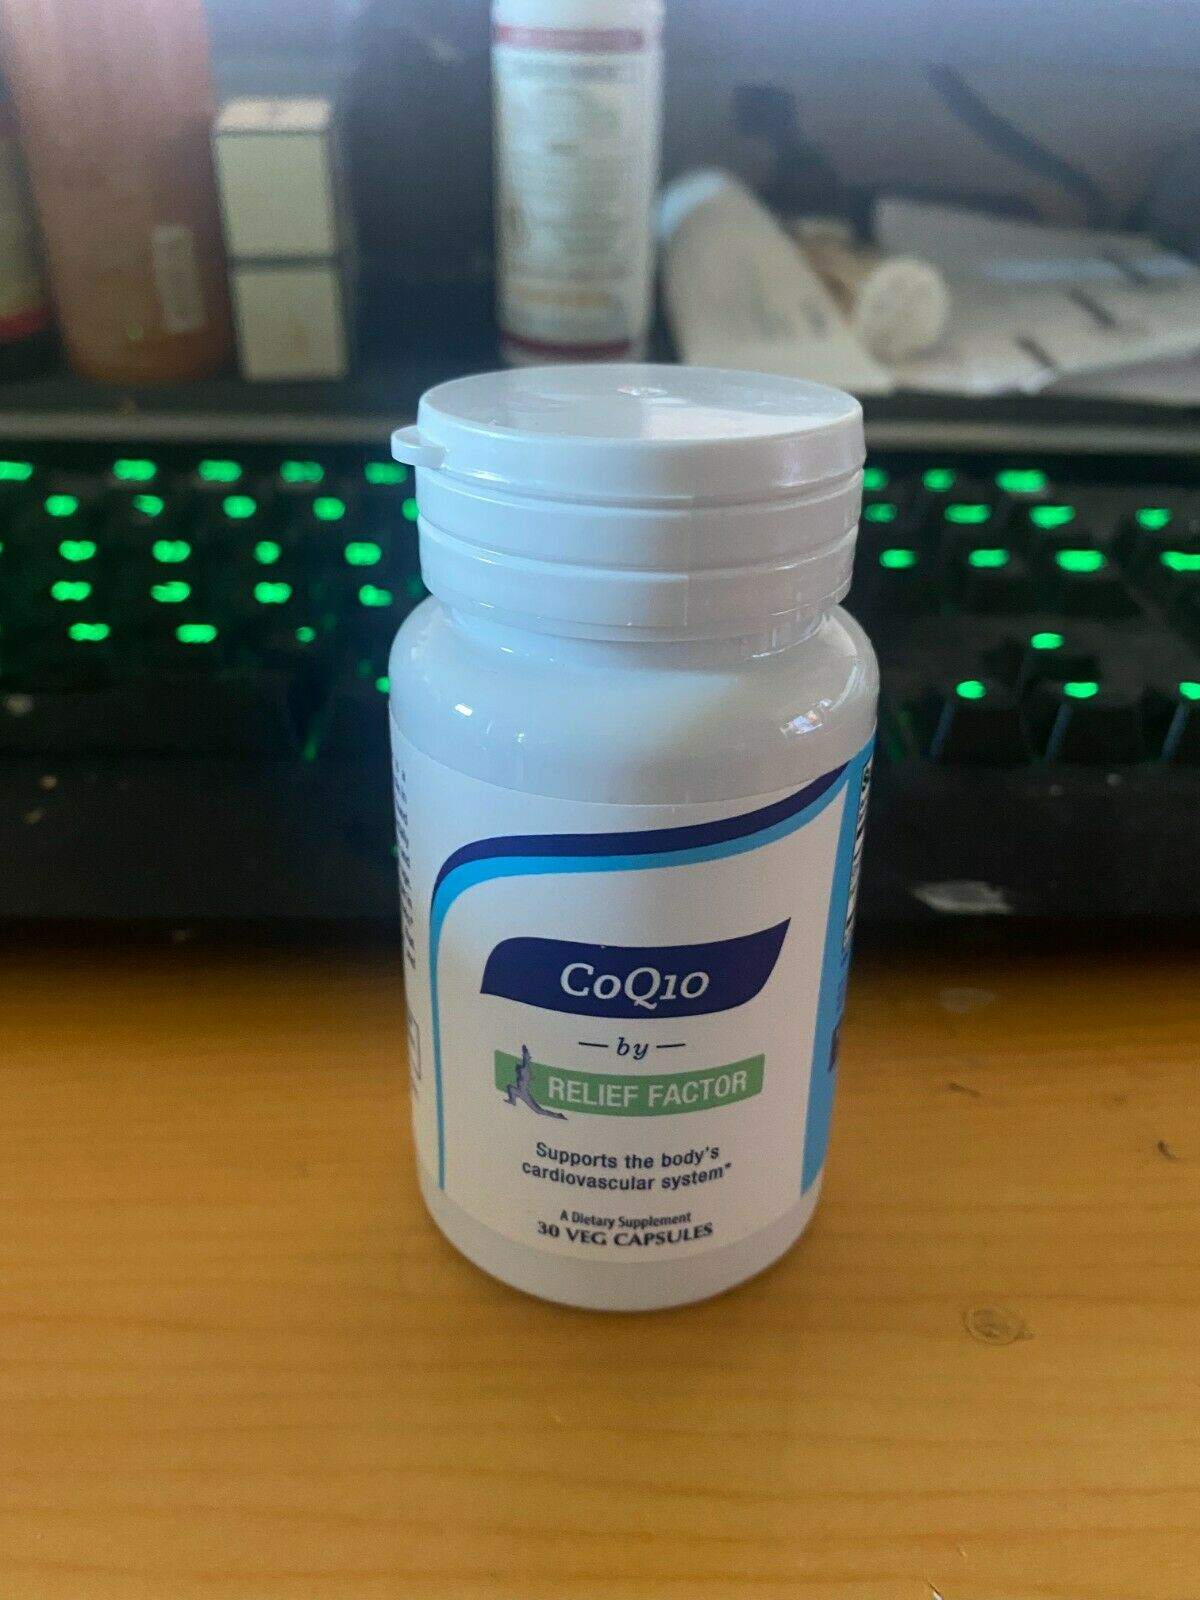 Relief Factor CoQ10 - 1 Bottle/30 Veg Capsules - EXP 5/2026 - FREE SHIPPING!